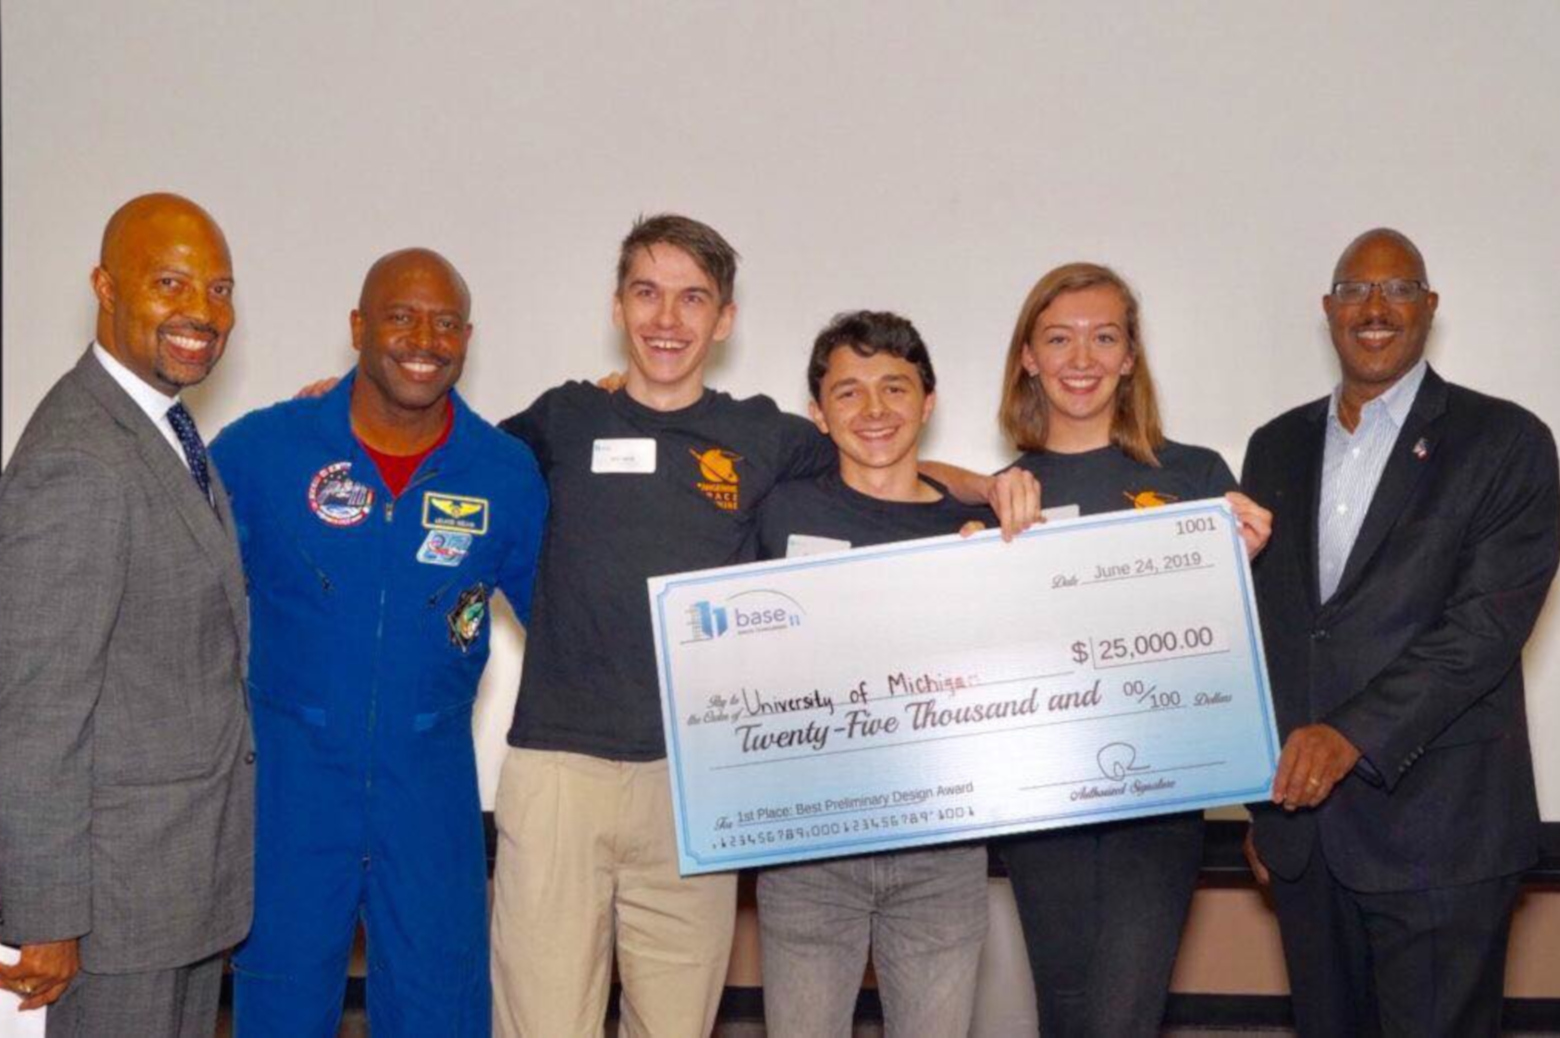 At the Next Frontier event, MASA student representatives met Astronaut Leland Melvin and heard a series of inspiring talks encouraging involvement in STEM and in the space industry. Photo credit: Base 11.